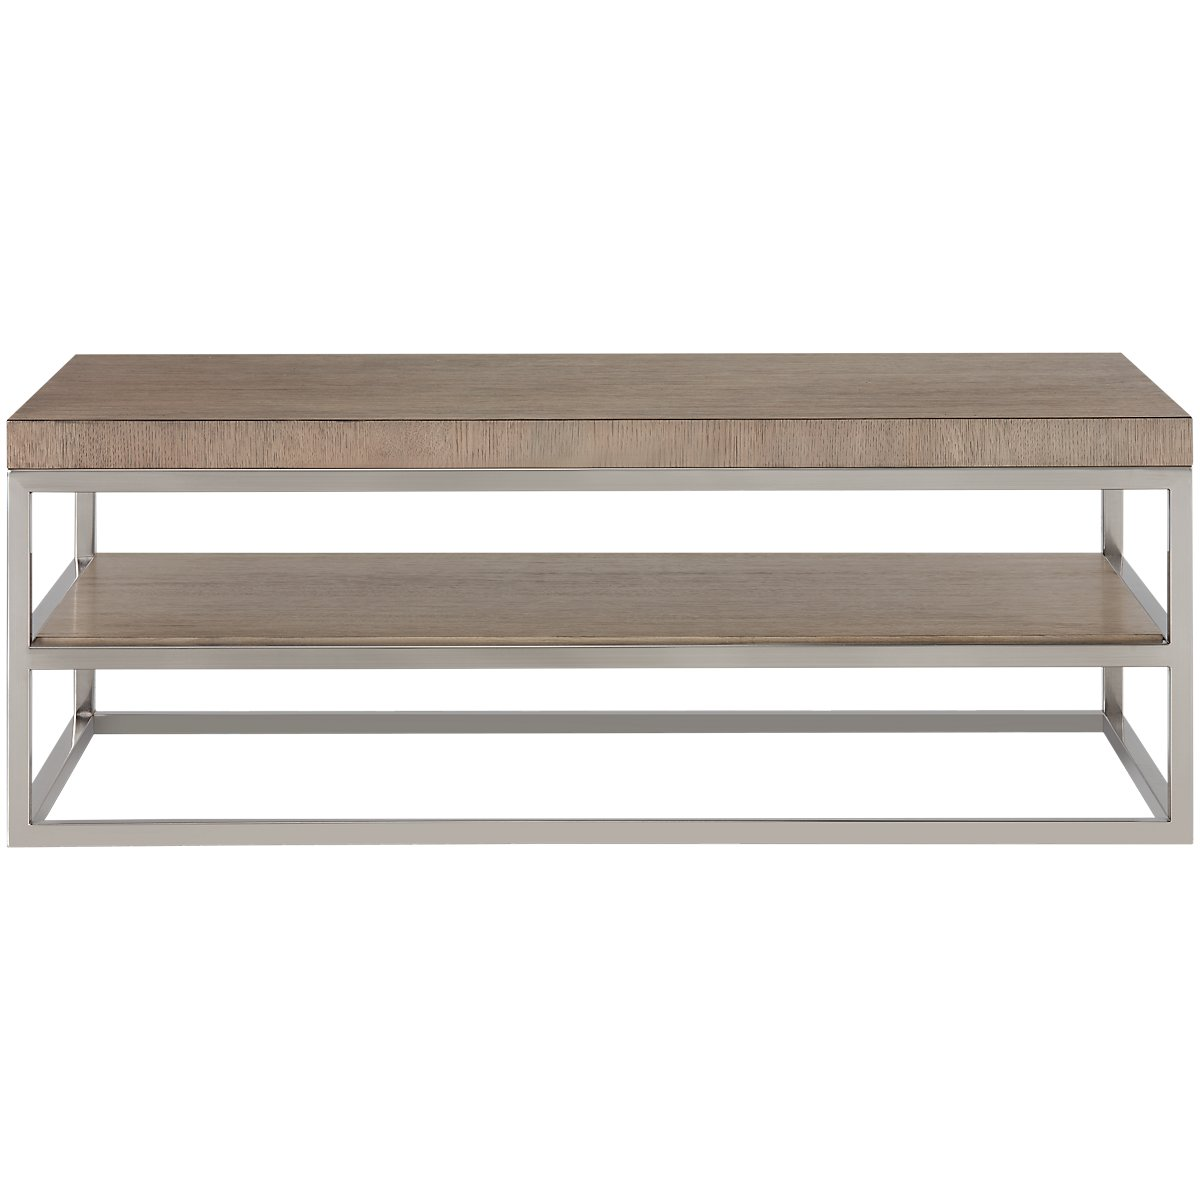 City Furniture Gramercy Light Tone Rectangular Coffee Table